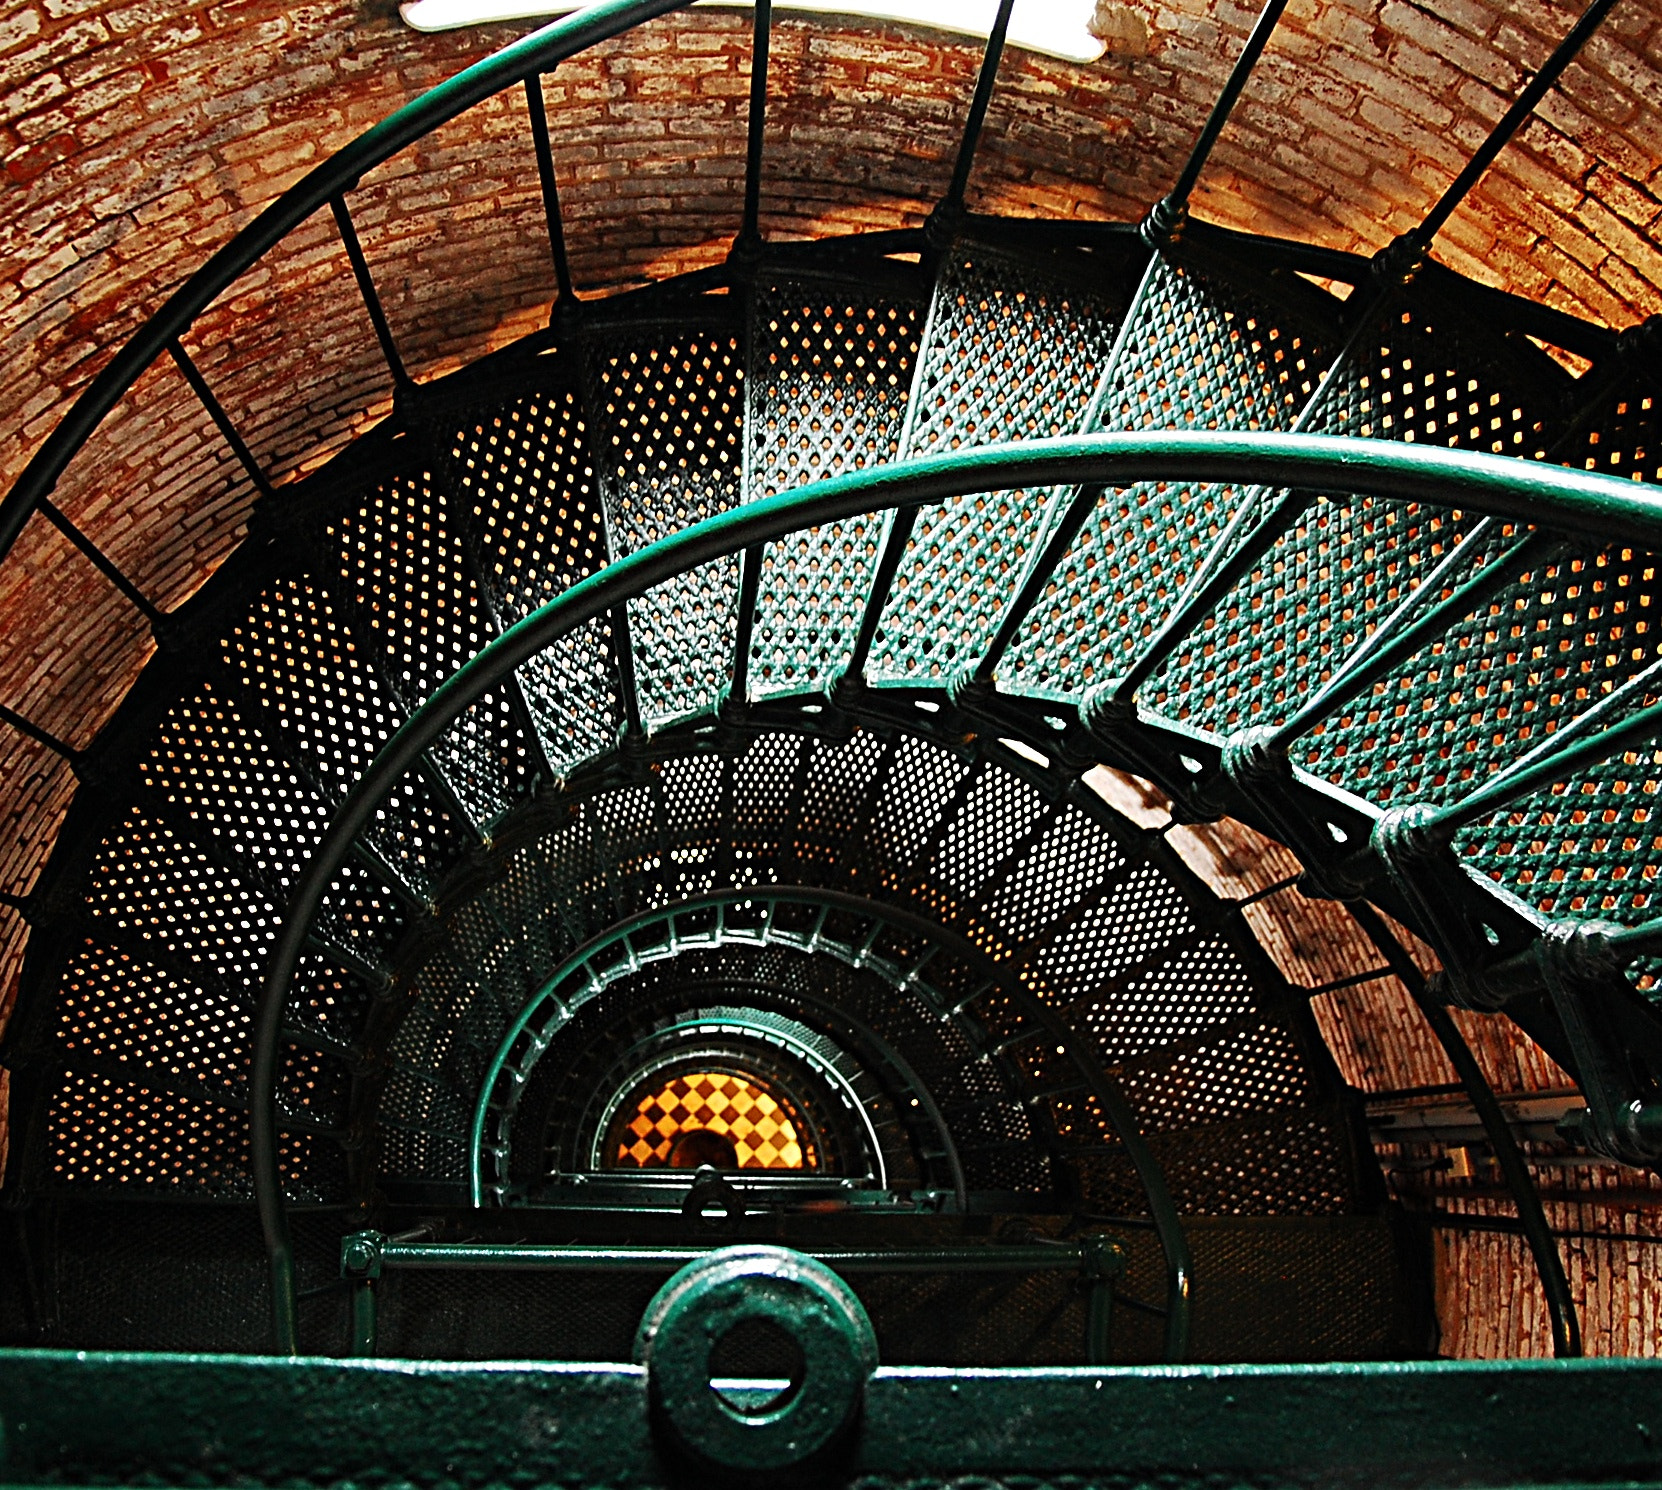 Photograph Spiral by Cynthia Zulla on 500px